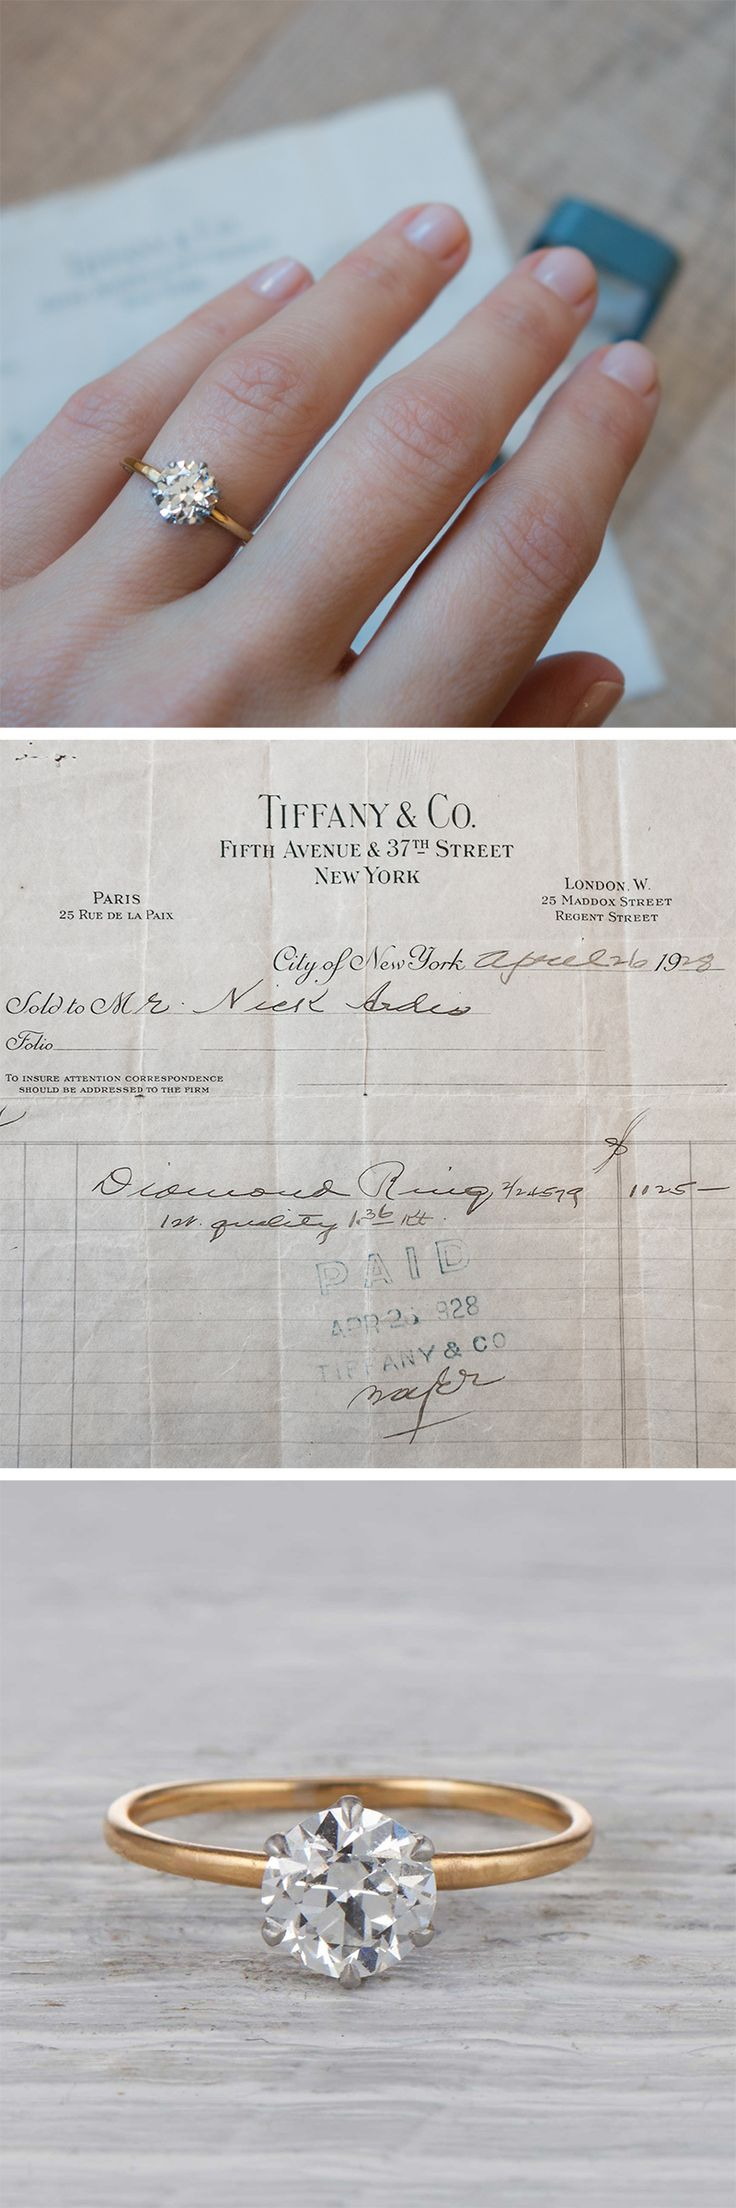 Featuring an original Tiffany & Co. sales receipt from 1928!